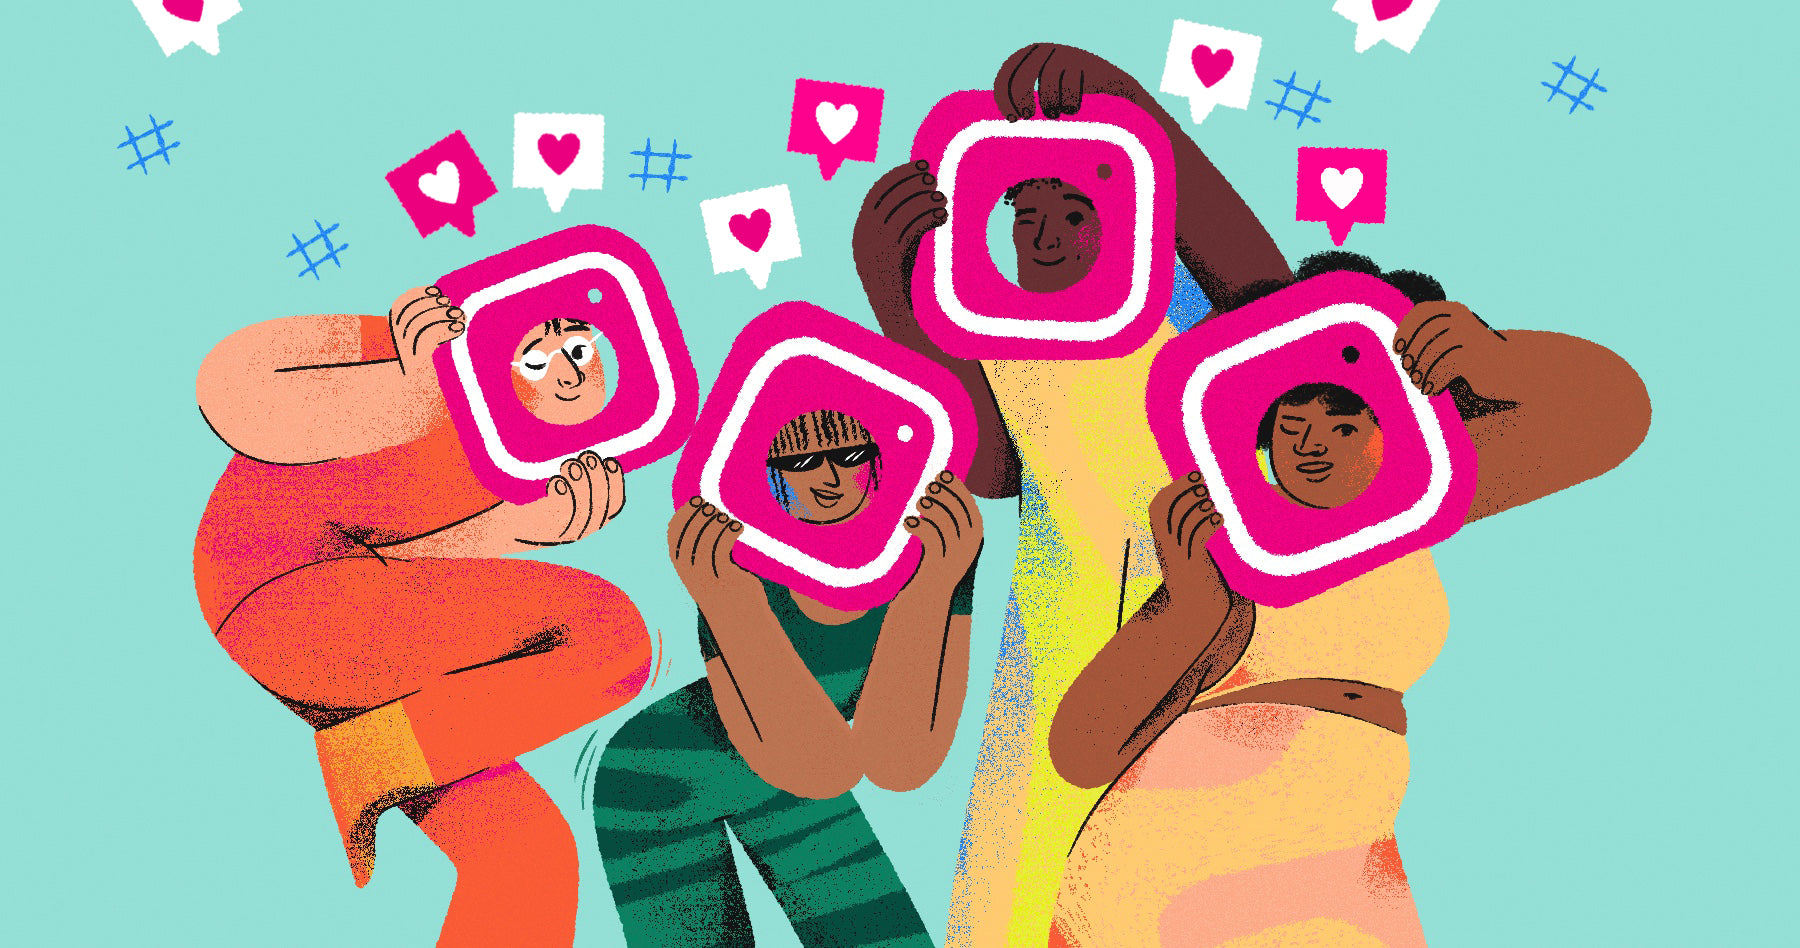 Illustration of four characters looking through the Instagram logo with hashtags and hearts surrounding them. This is a metaphor for gaining new followers.